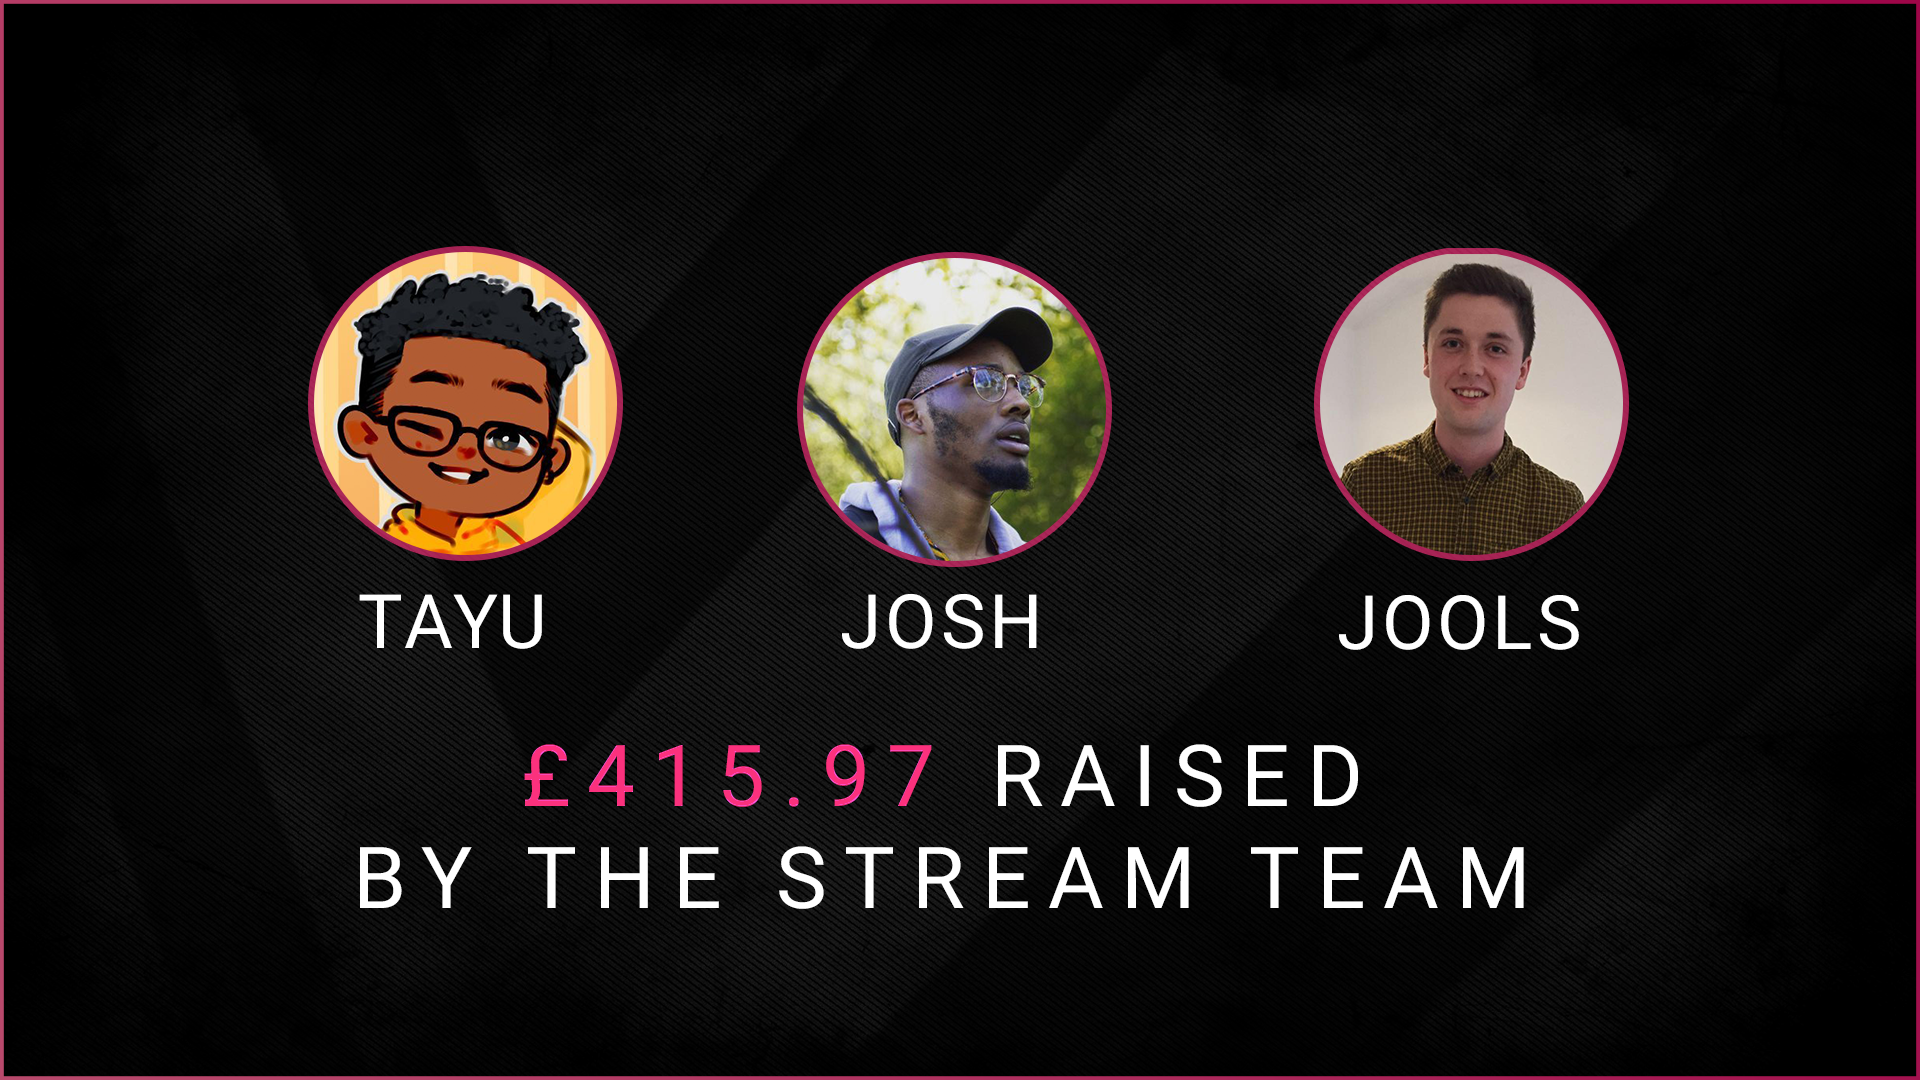 #BlackLivesMatter Charity Streams raise £415.97